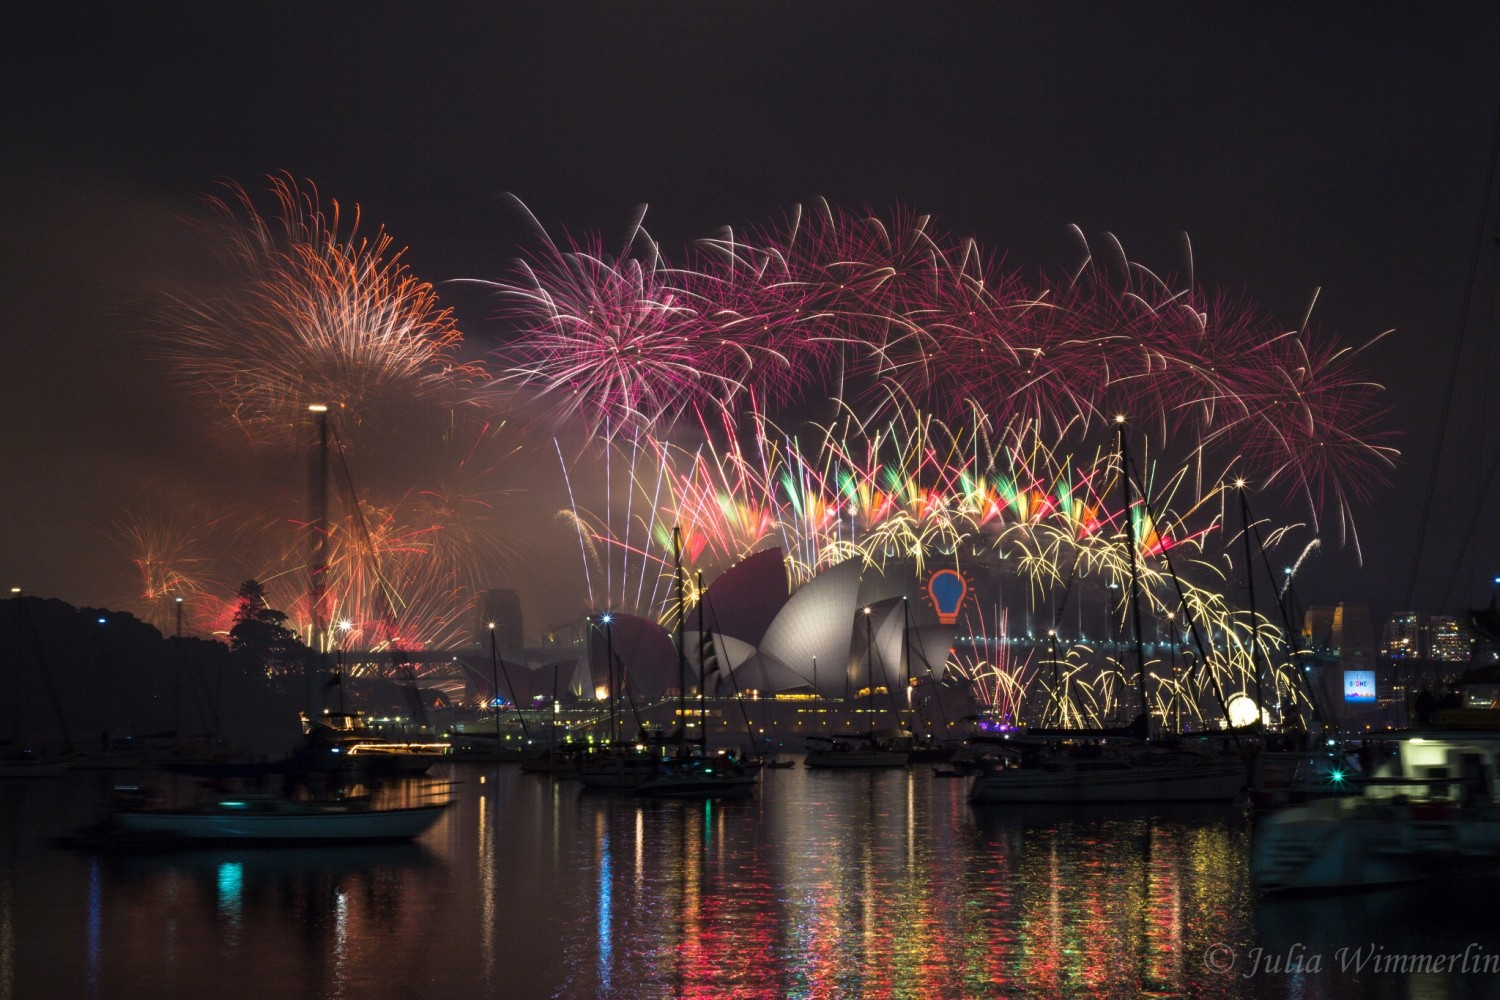 500px Blog » » Happy New Year 2015 from Our Friends in Sydney, Australia